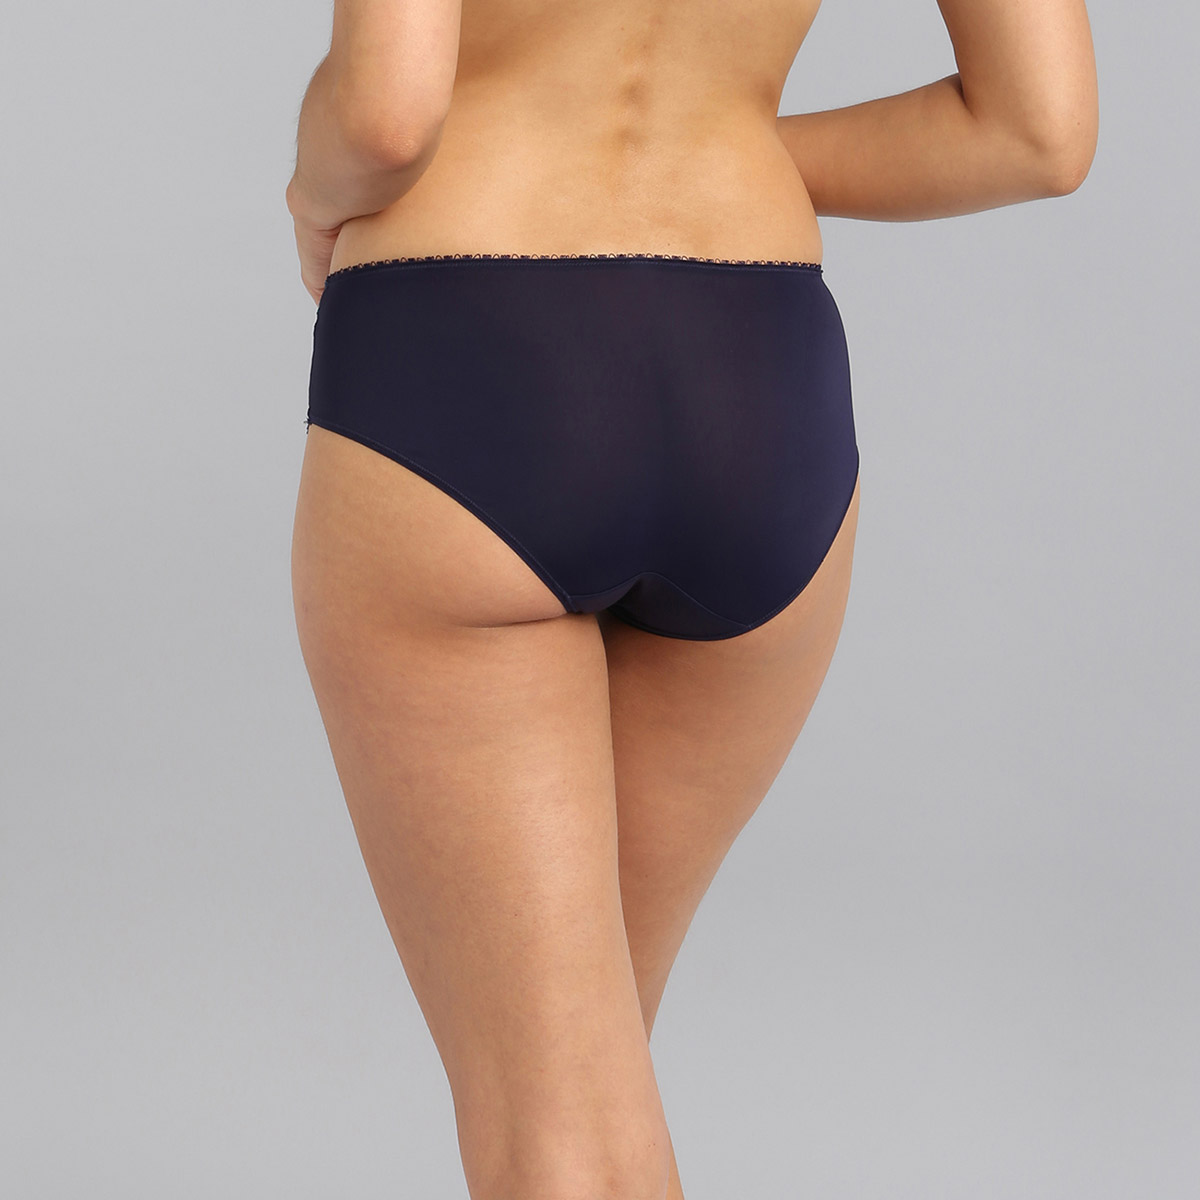 Midi knickers in navy Flower Elegance, , PLAYTEX